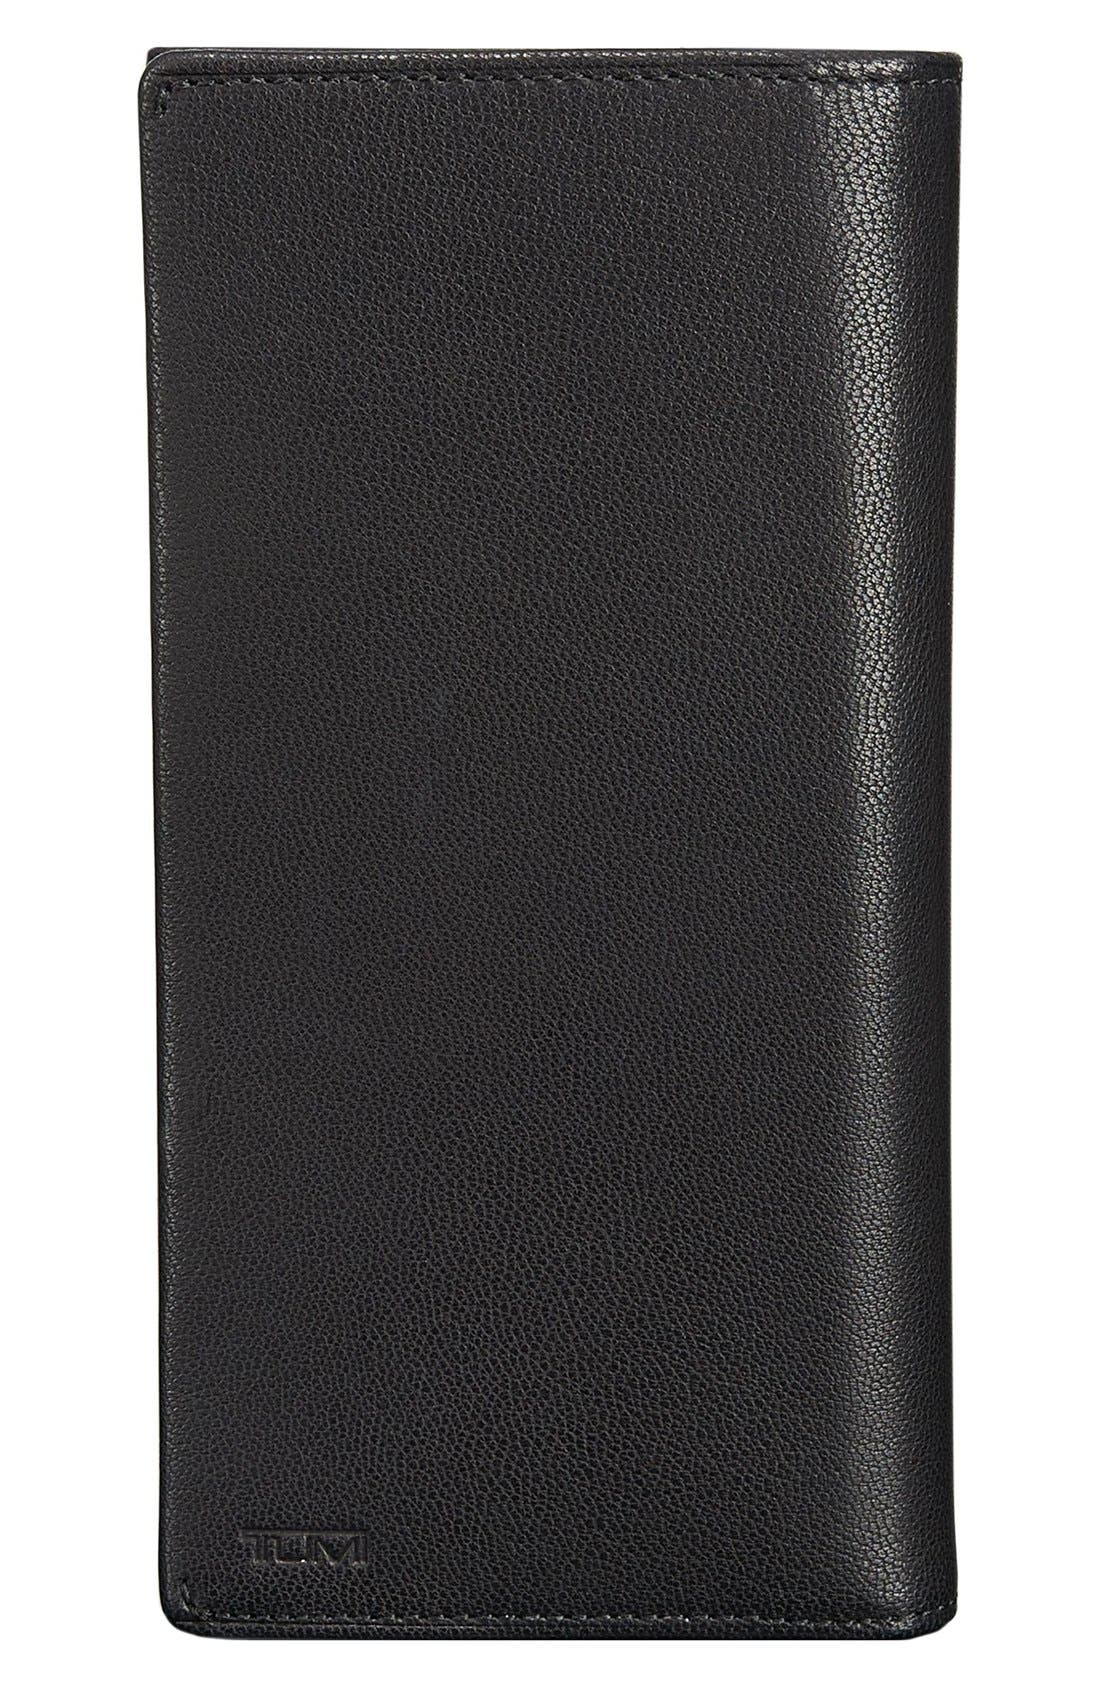 TUMI 'Chambers' Leather Breast Pocket Wallet, Main, color, 001